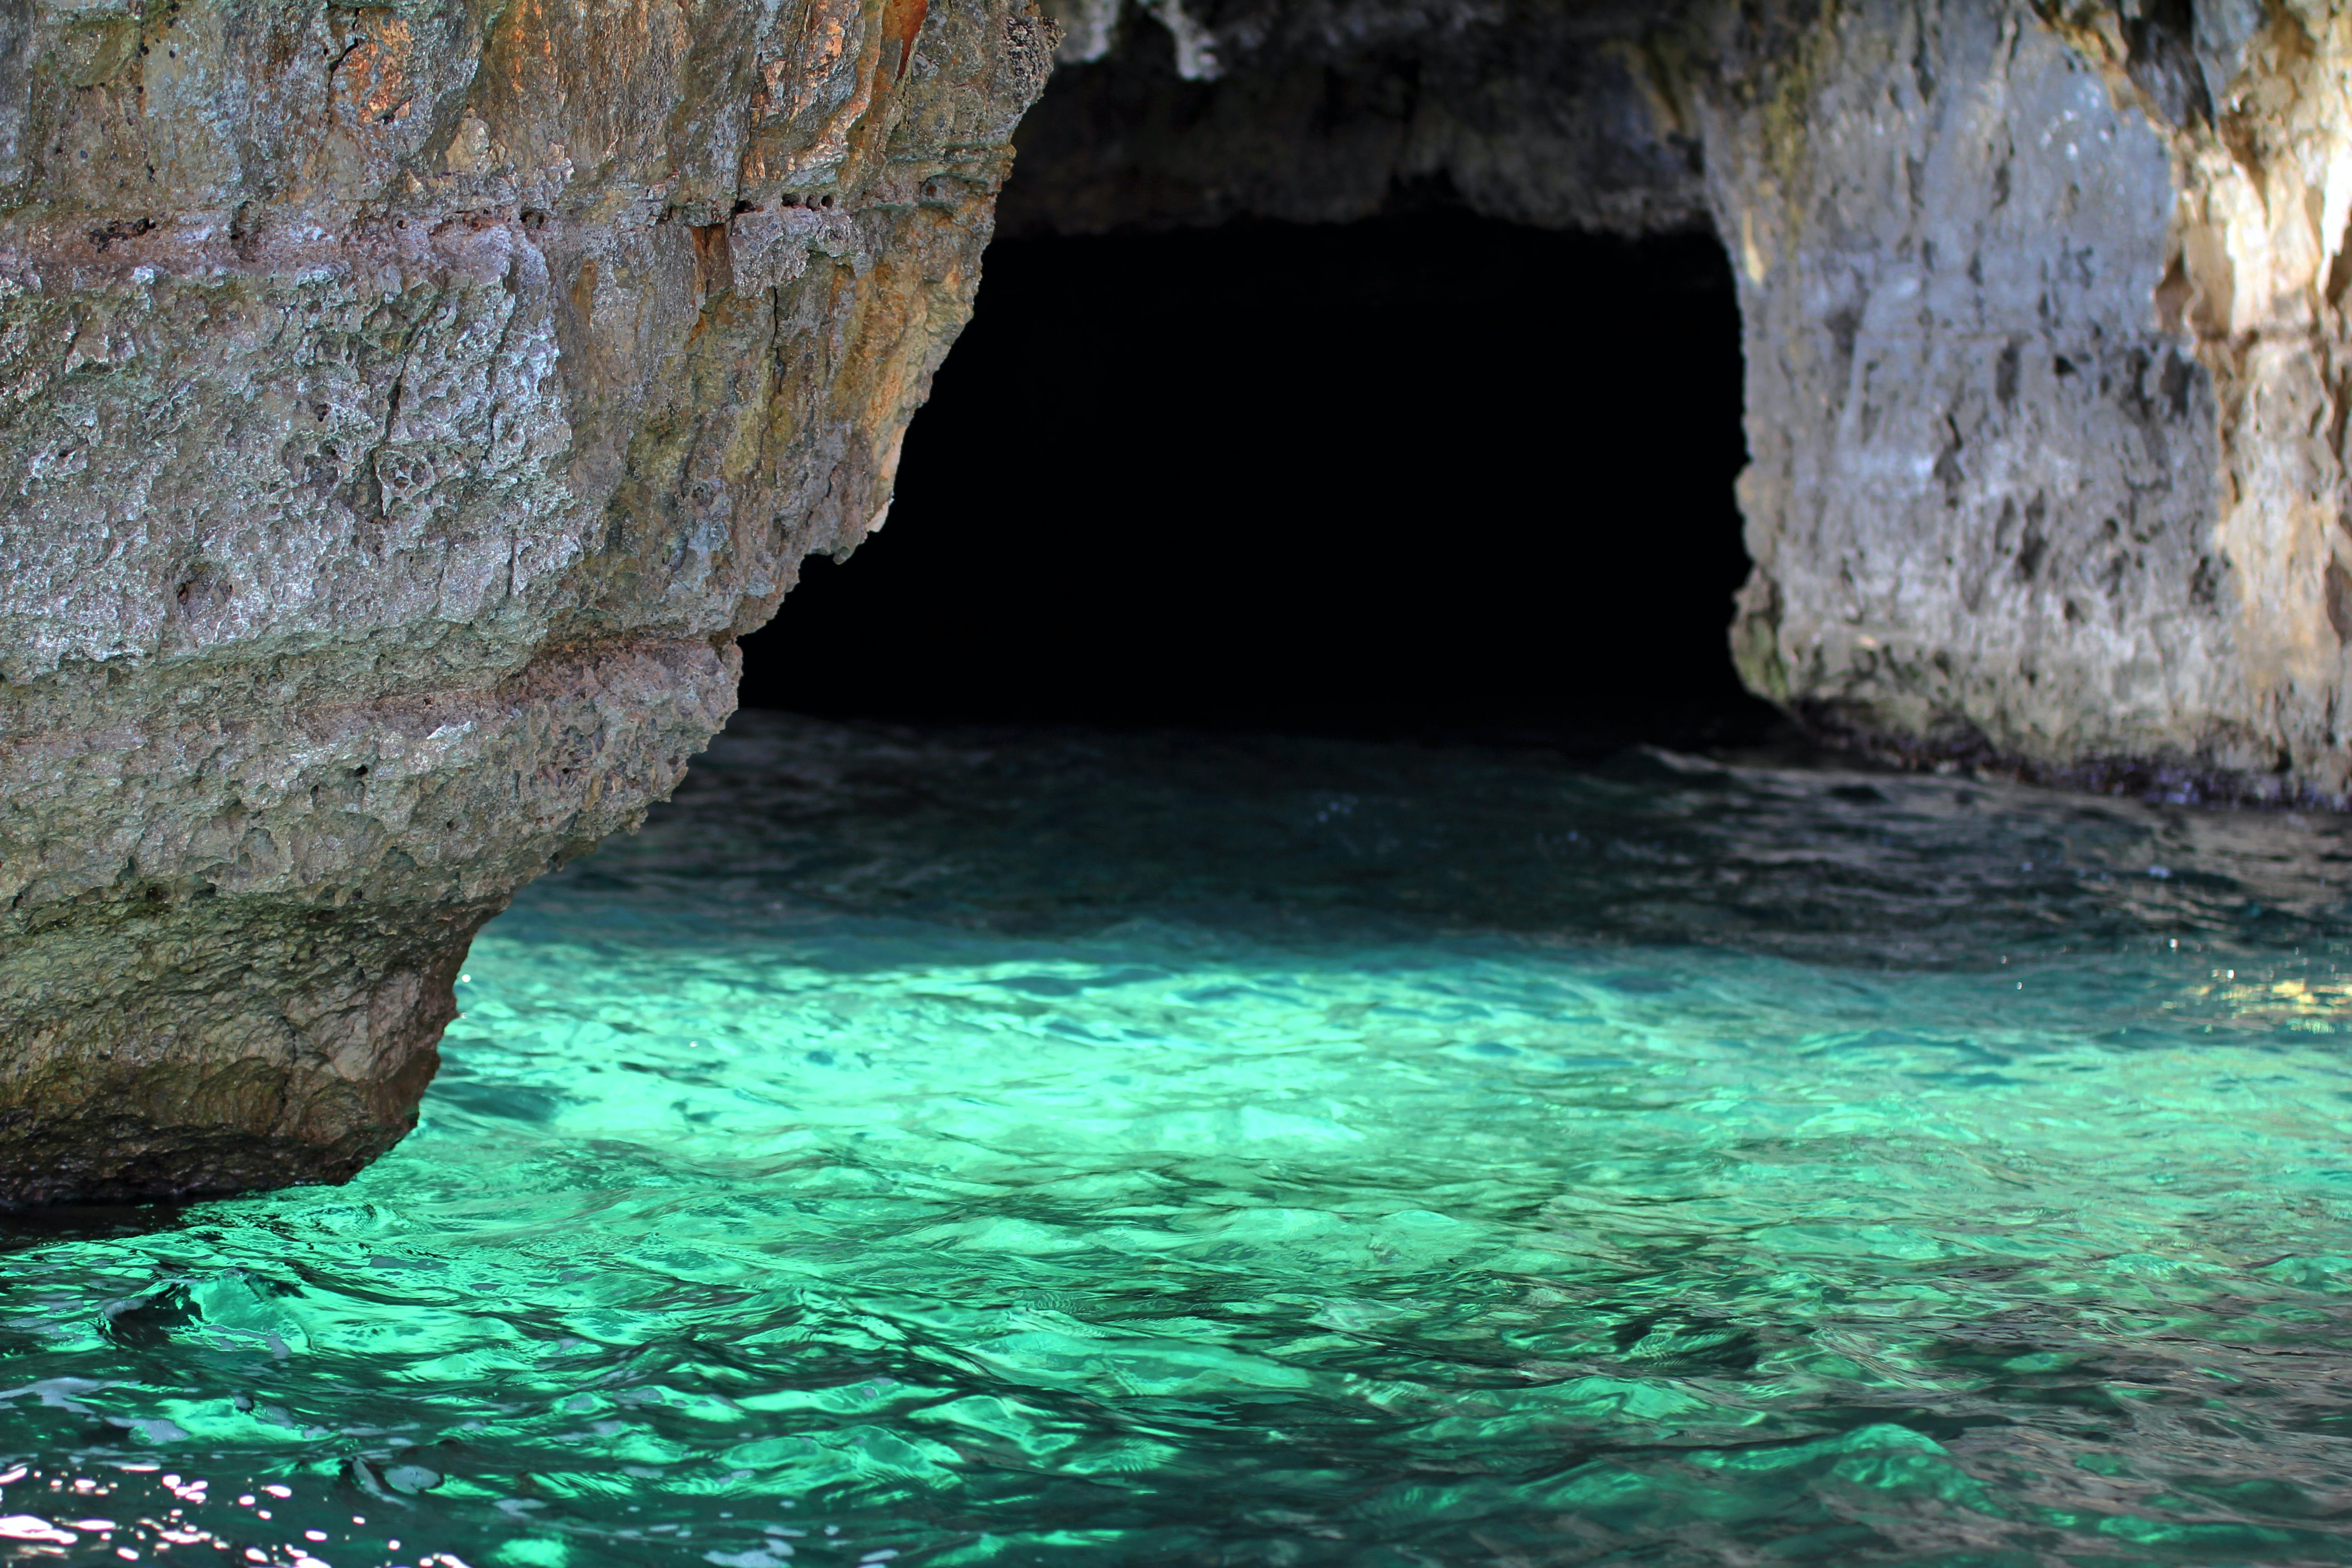 Body of Water in Cave